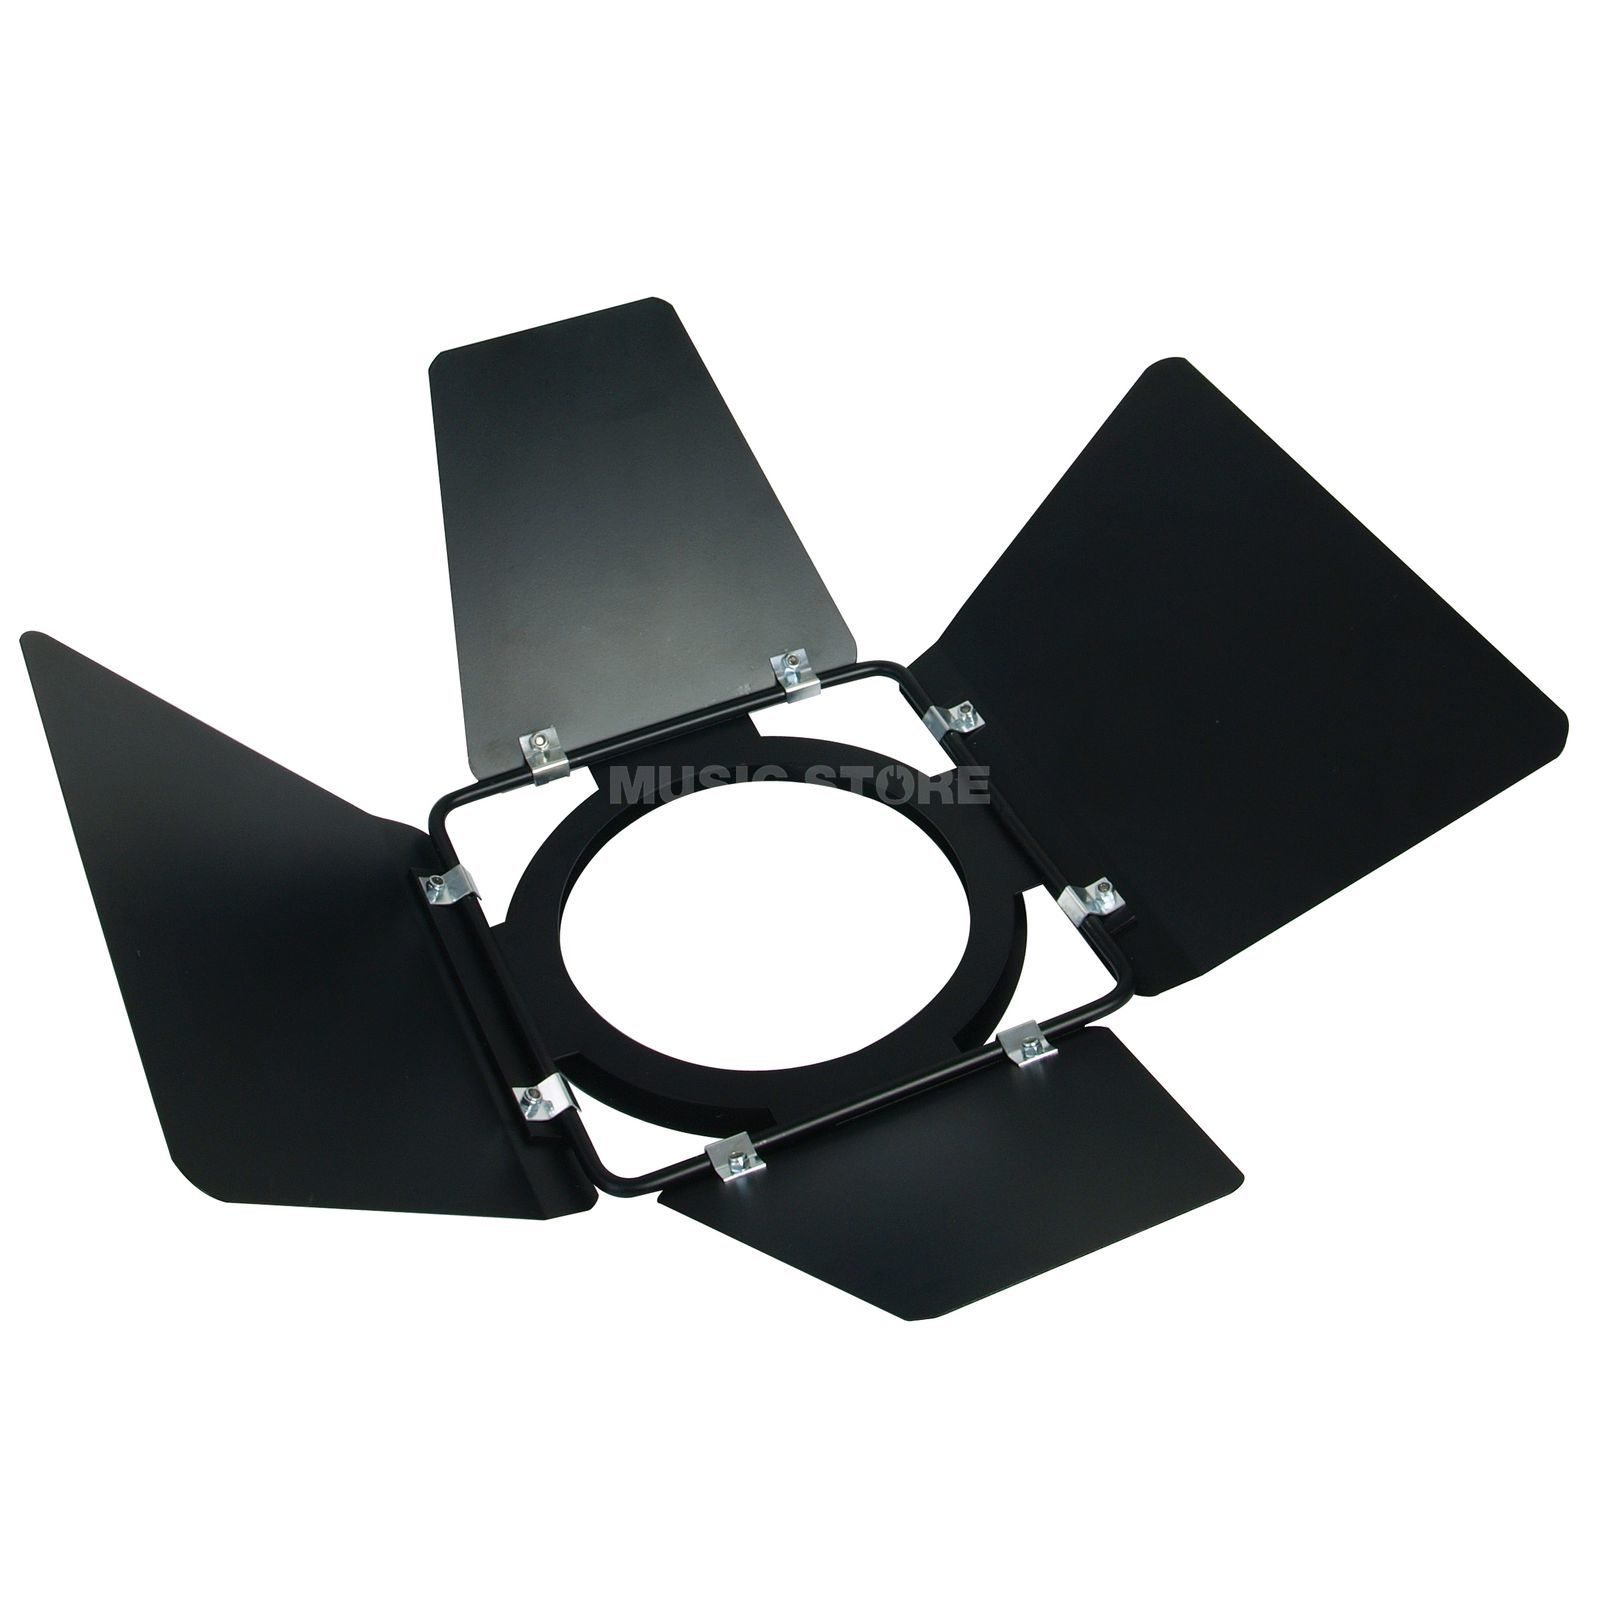 Varytec Barndoor Theater Spot Pro 300 / 500 black Product Image